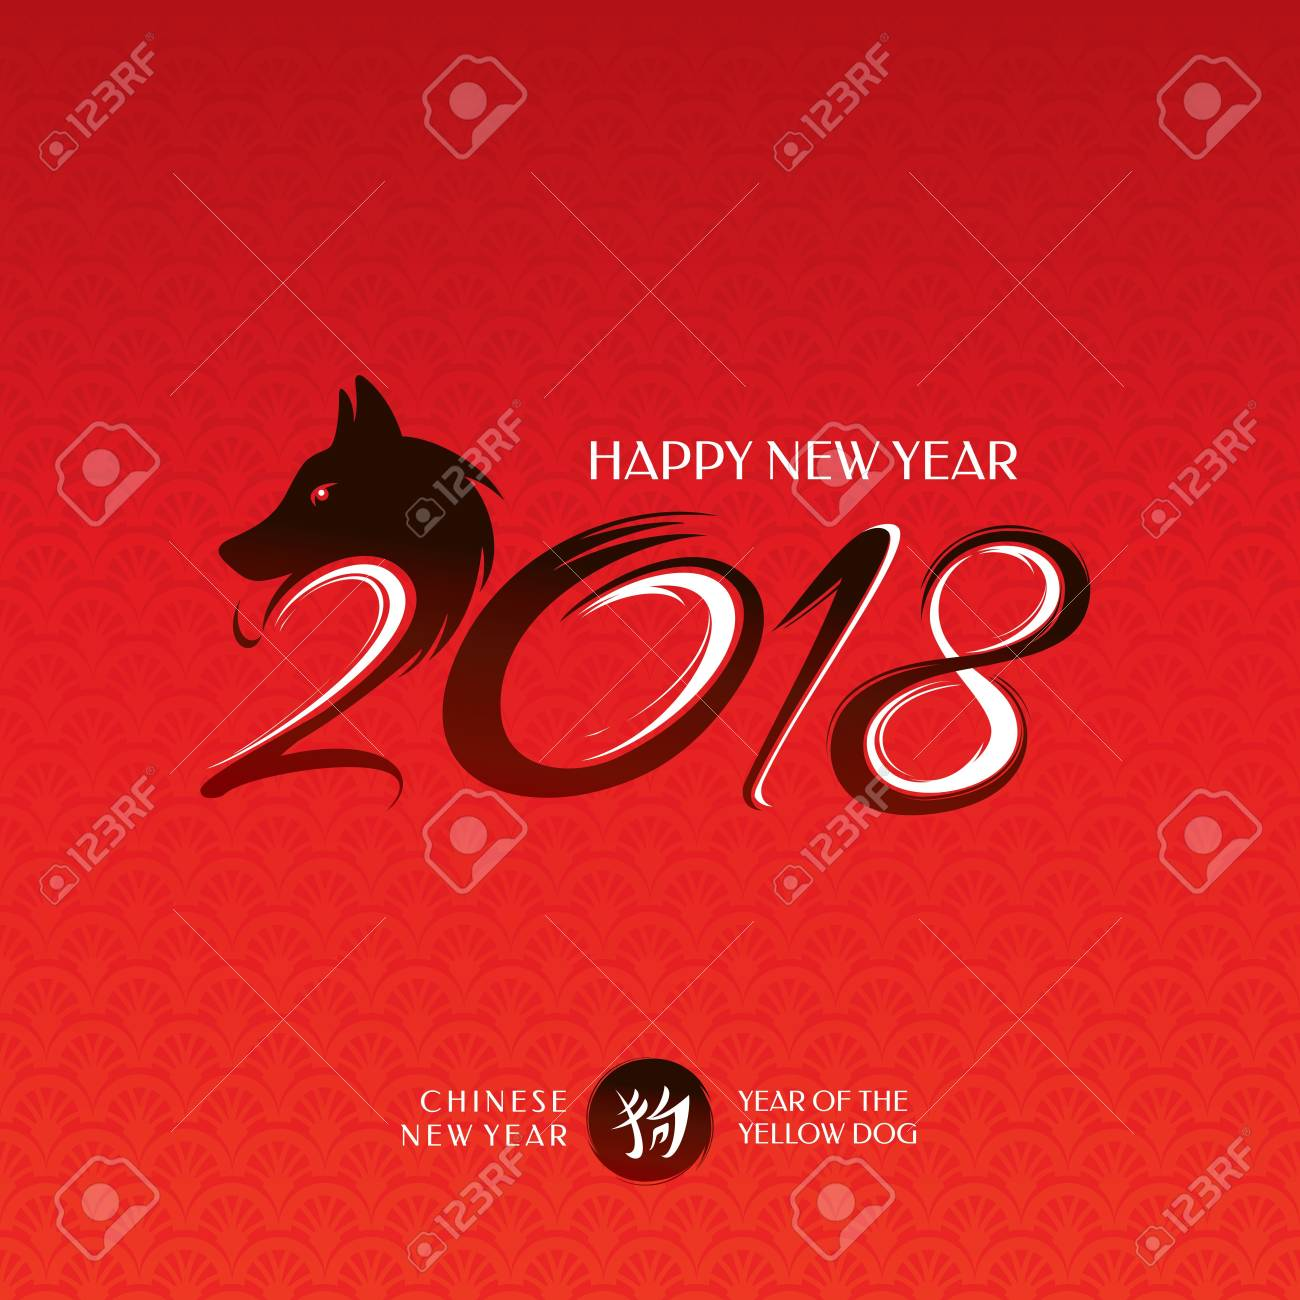 Chinese New Year Greeting Card 2018 Year Of The Yellow Dog